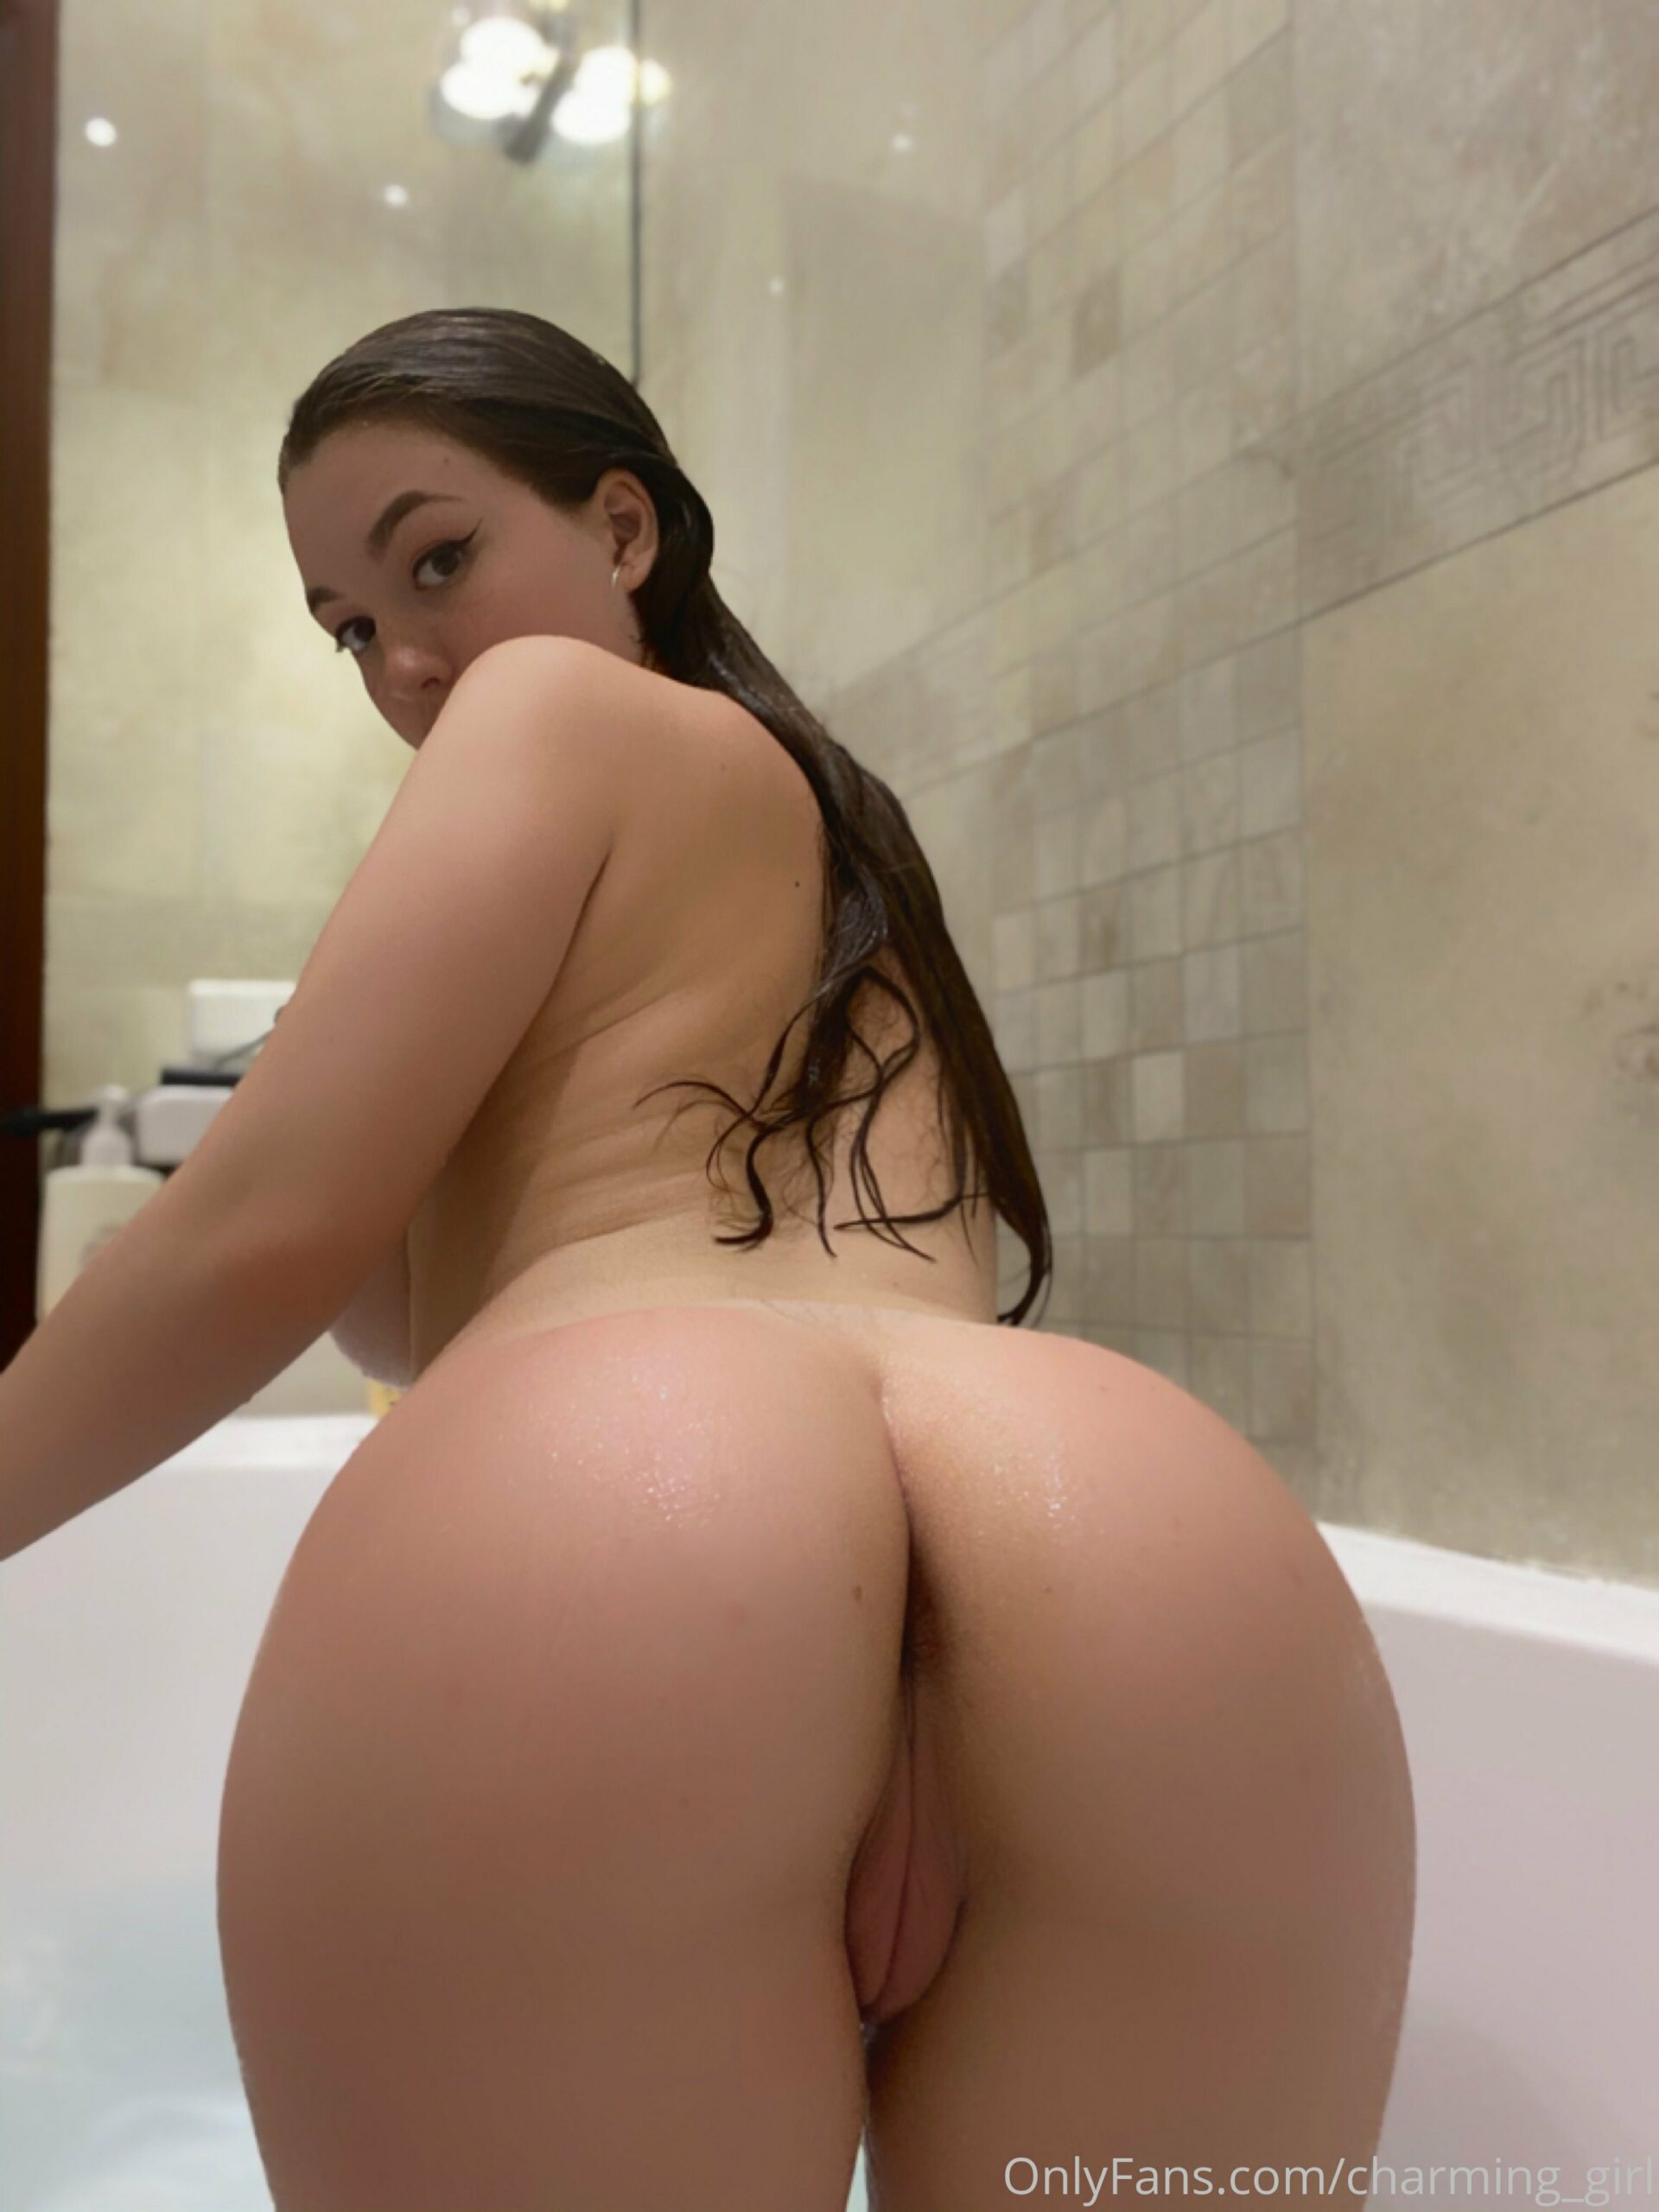 Charming girl Porn OnlyFans Leaked Nudes 51